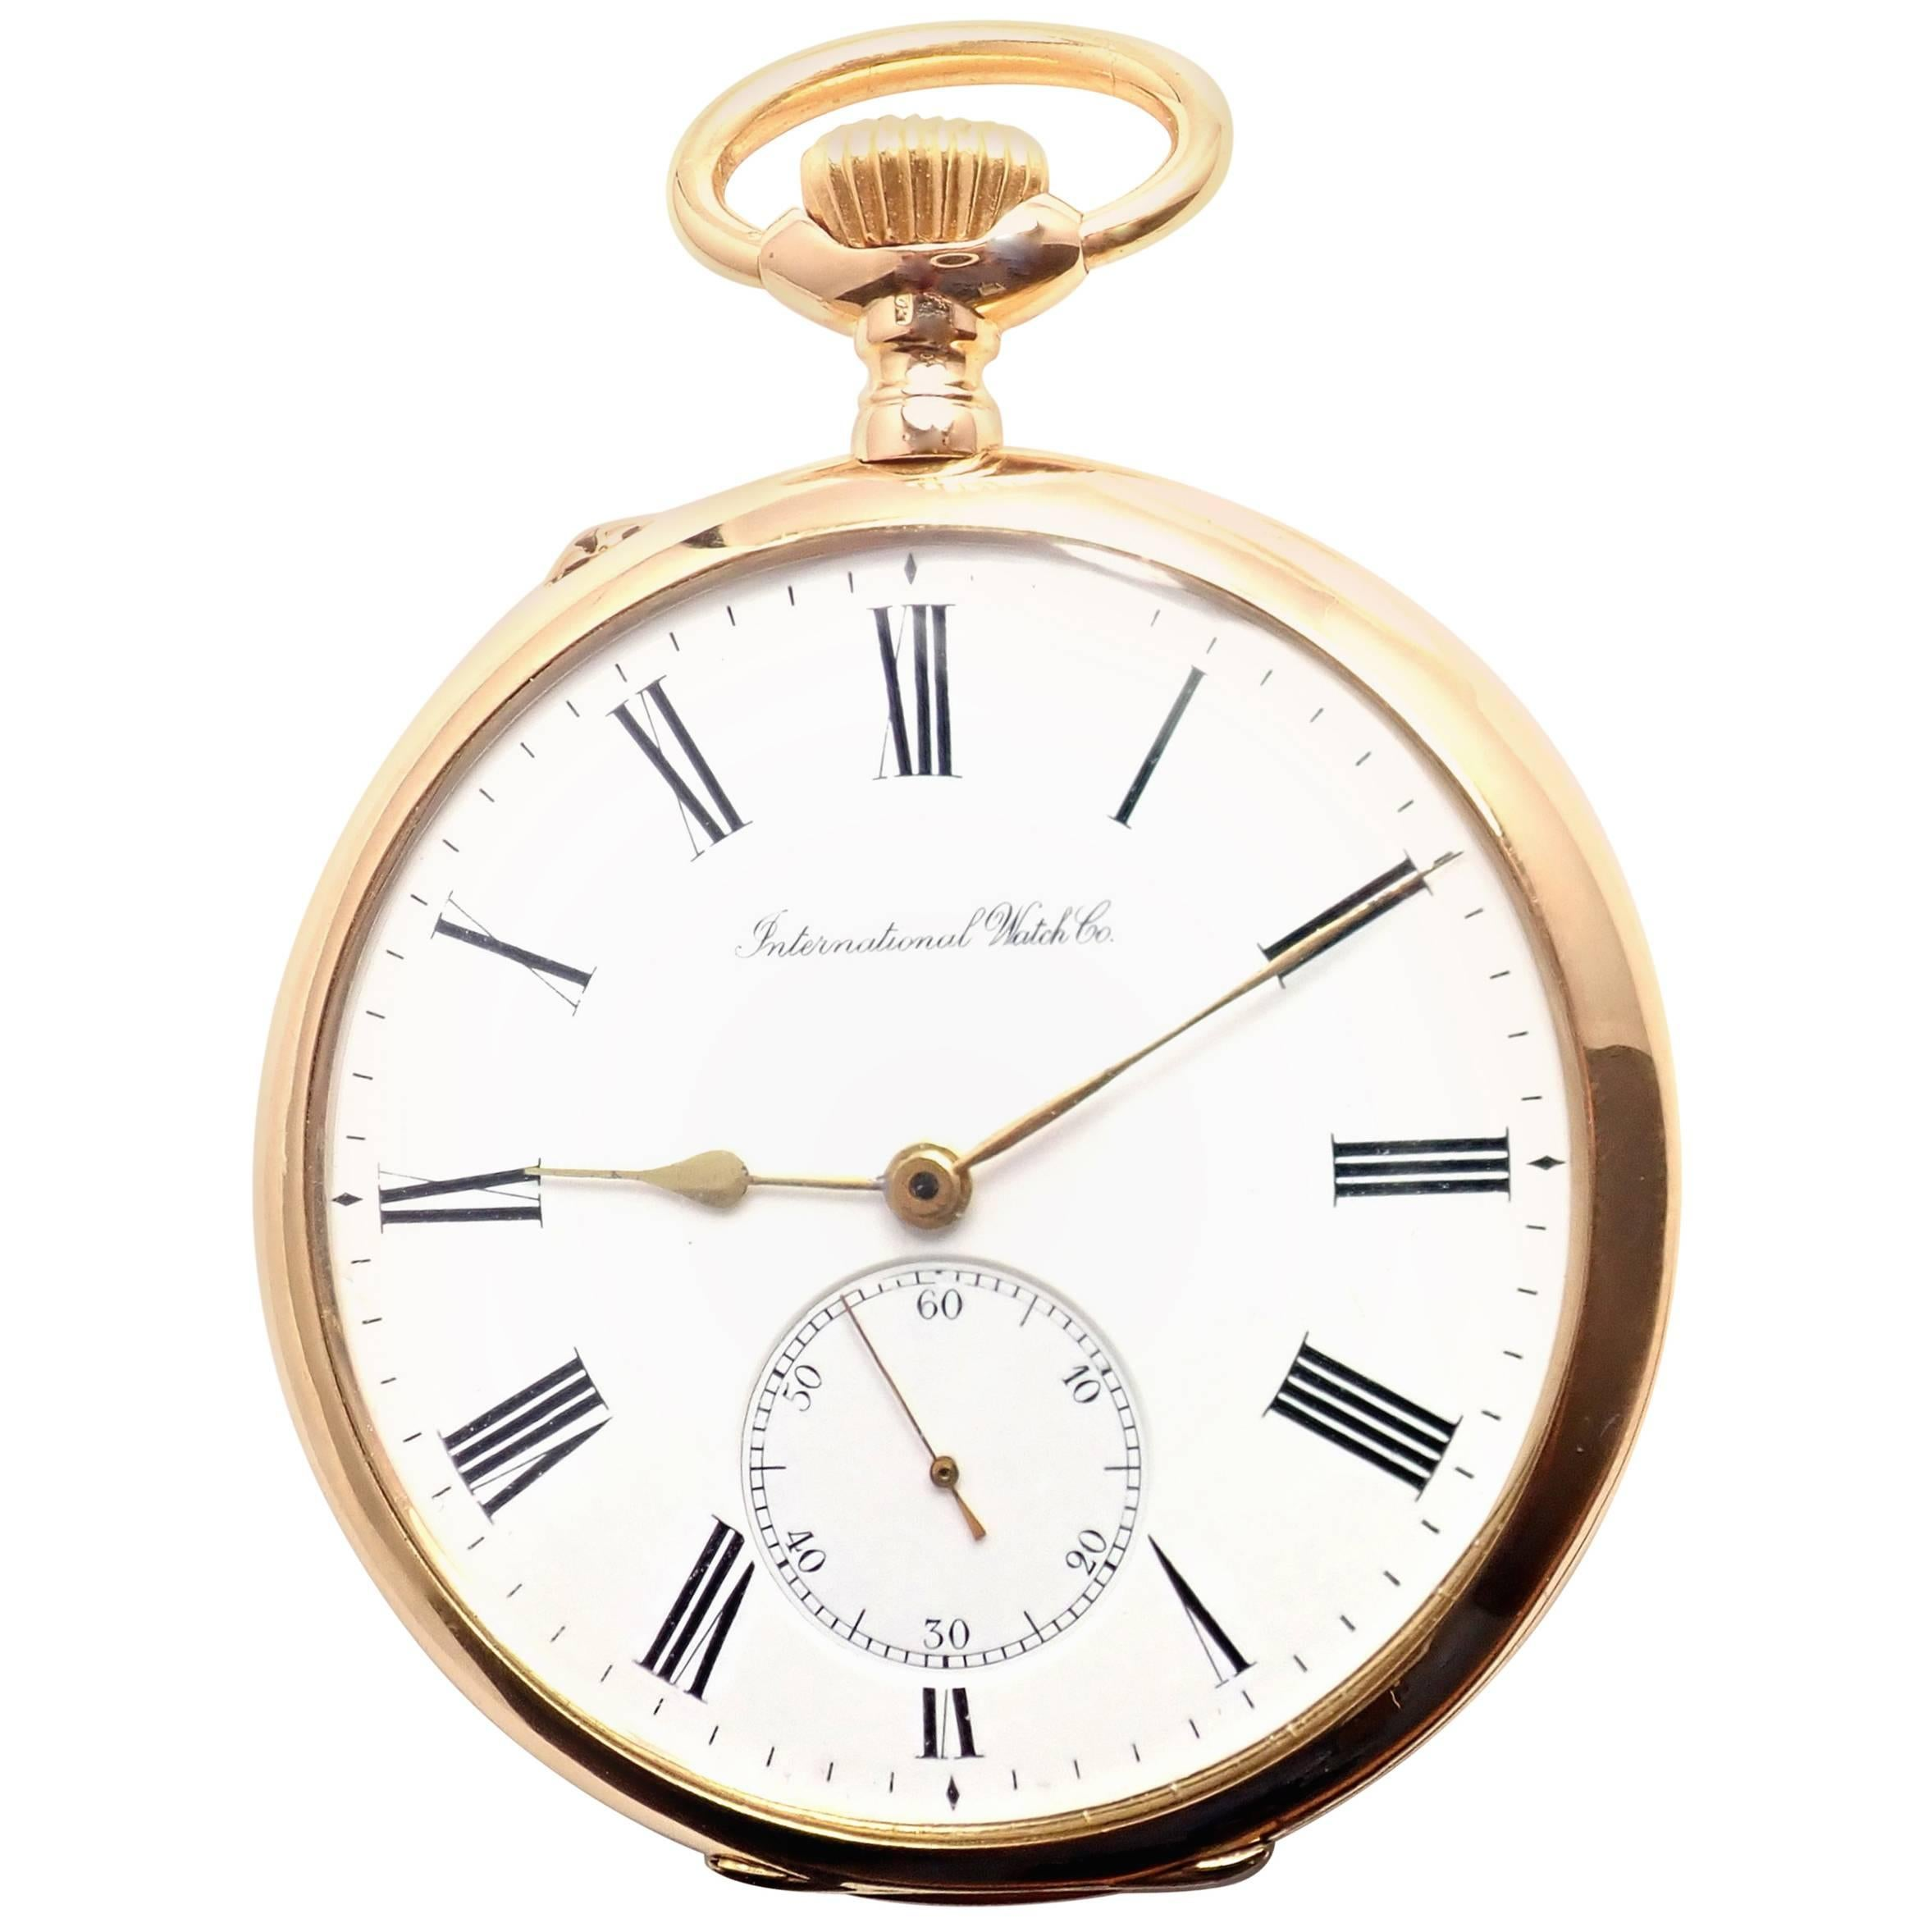 bcd03bad8 IWC International Watch Co. Yellow Gold Pocket Watch For Sale at 1stdibs